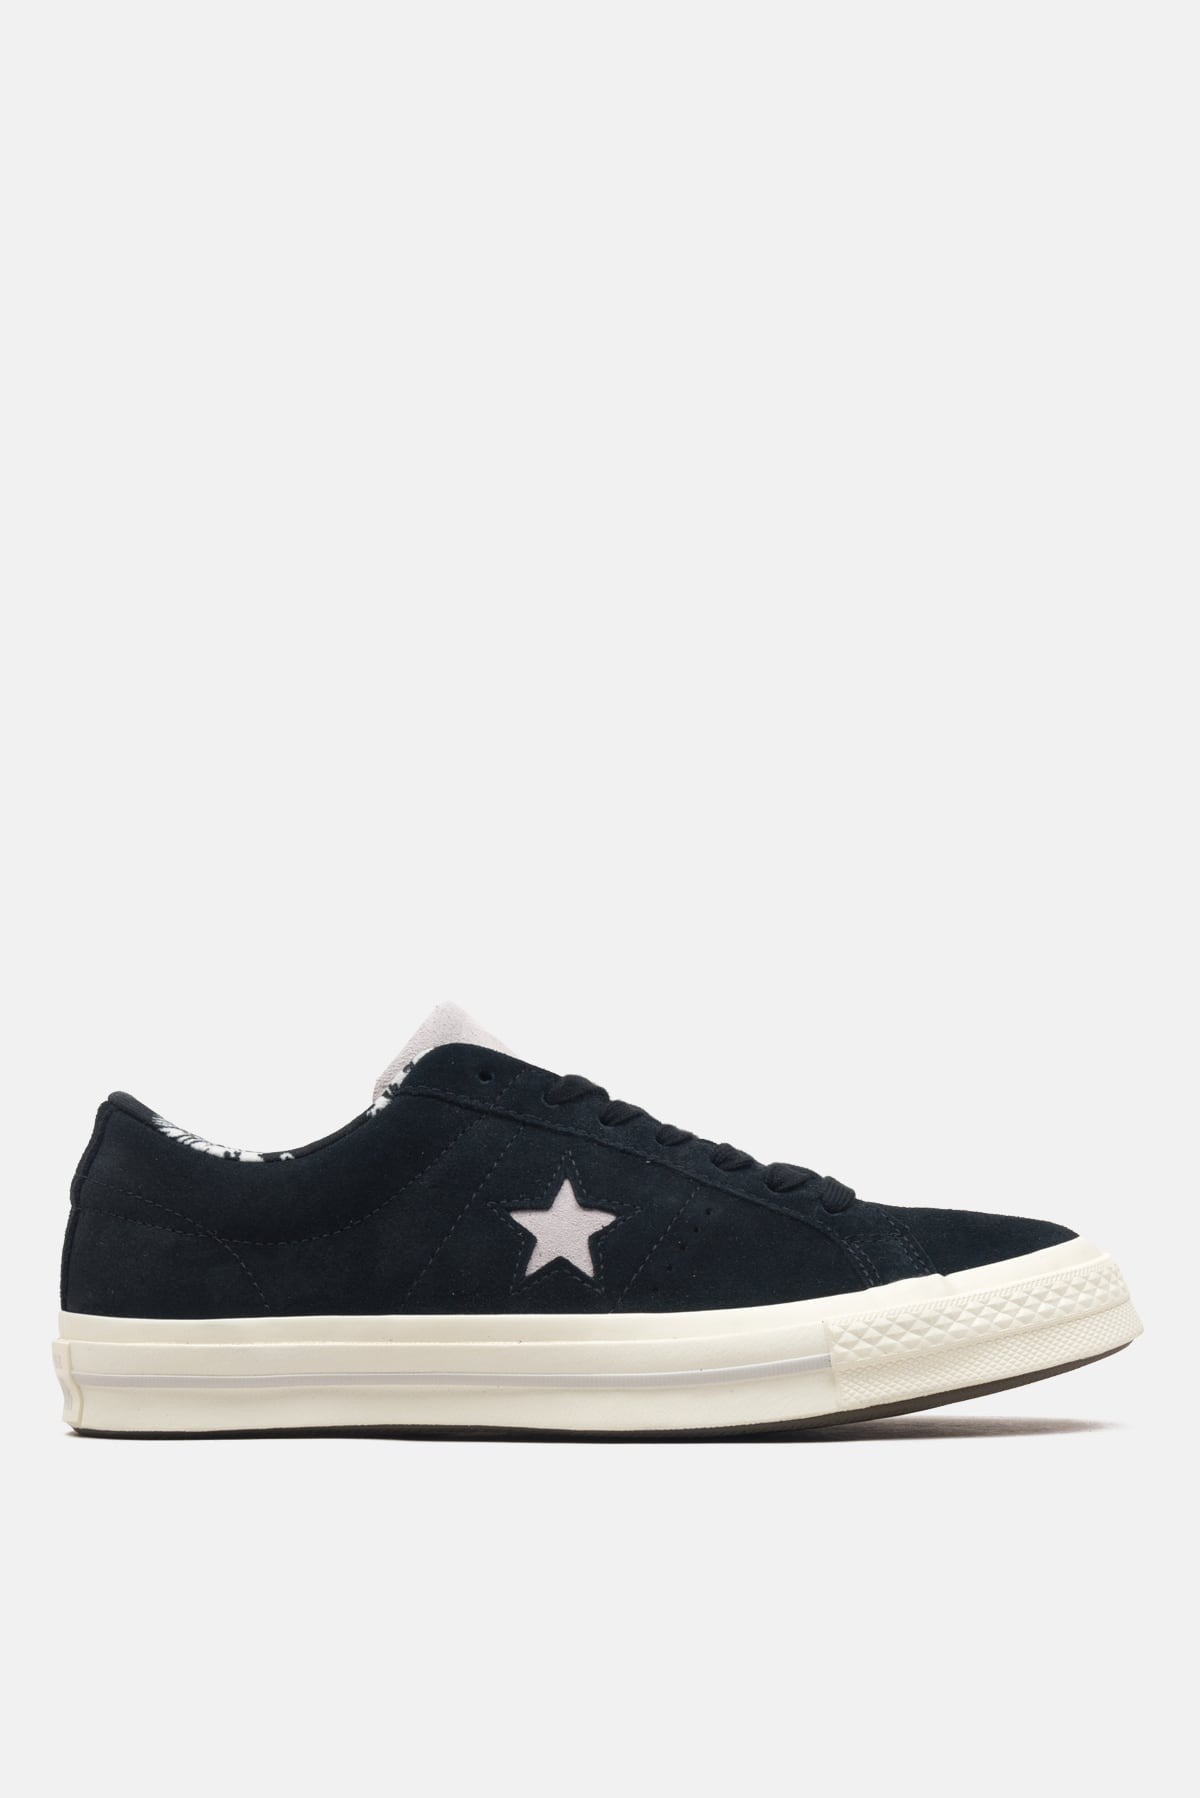 Chaussures Converse Star Sur Pro Disponible One Priory MVSzUp